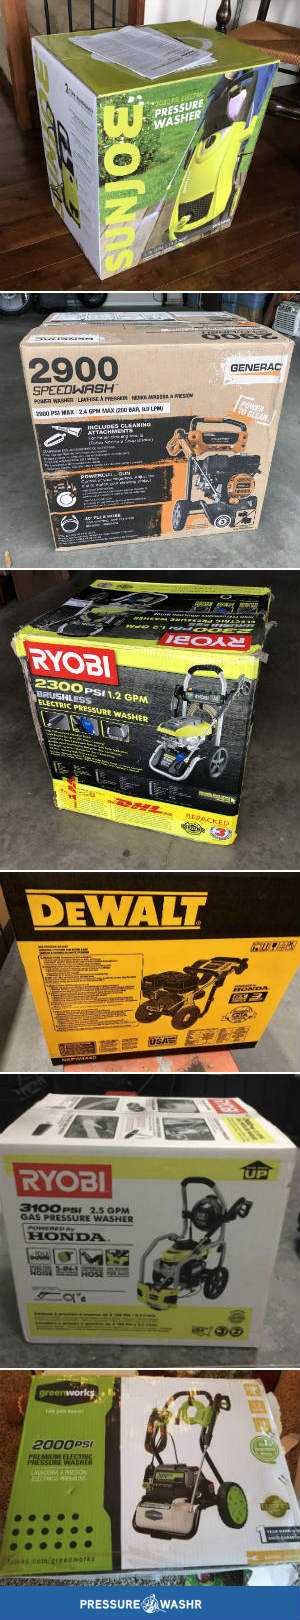 Pics of bought pressure washers in their boxes